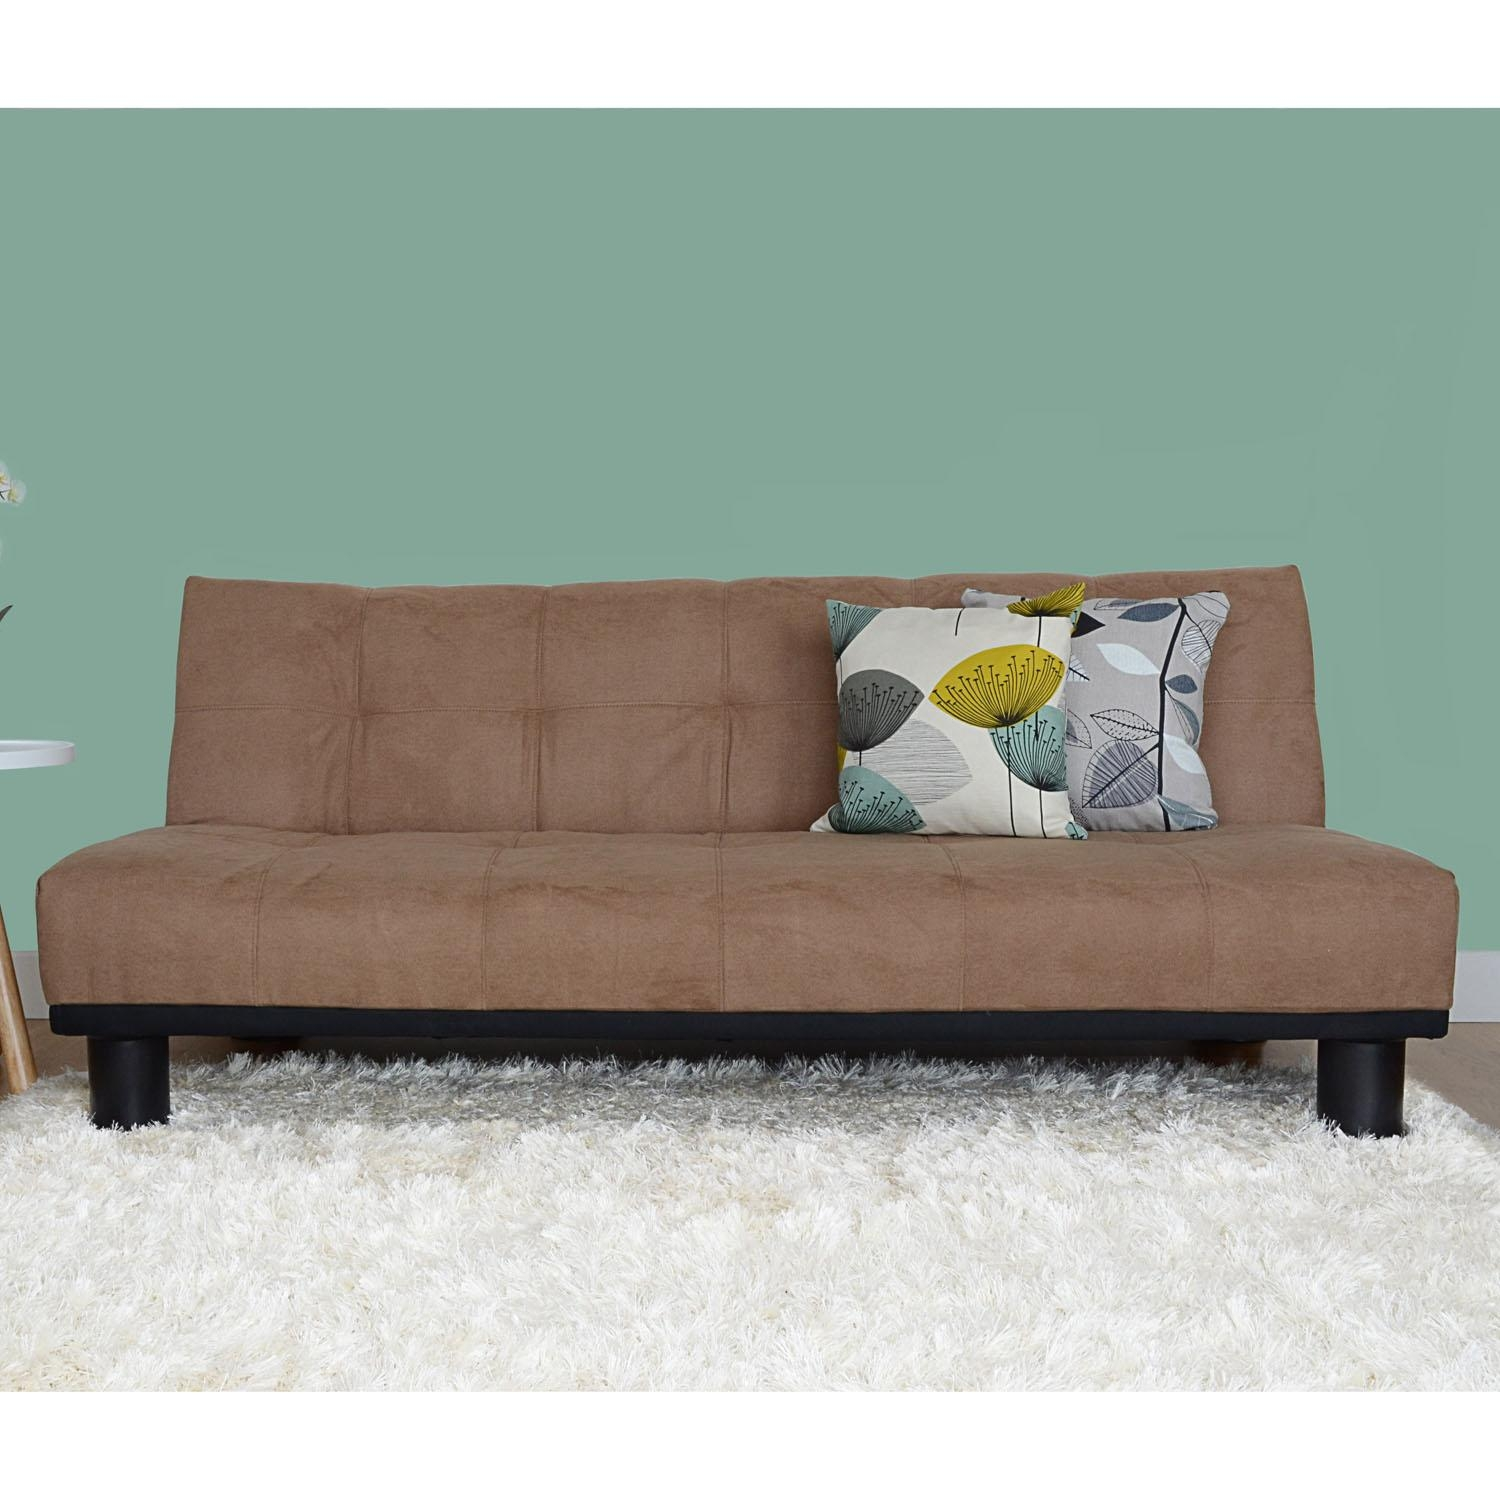 Brown Faux Suede Sofa Bed | Sofa Menzilperde With Faux Suede Sofa Bed (Image 3 of 20)